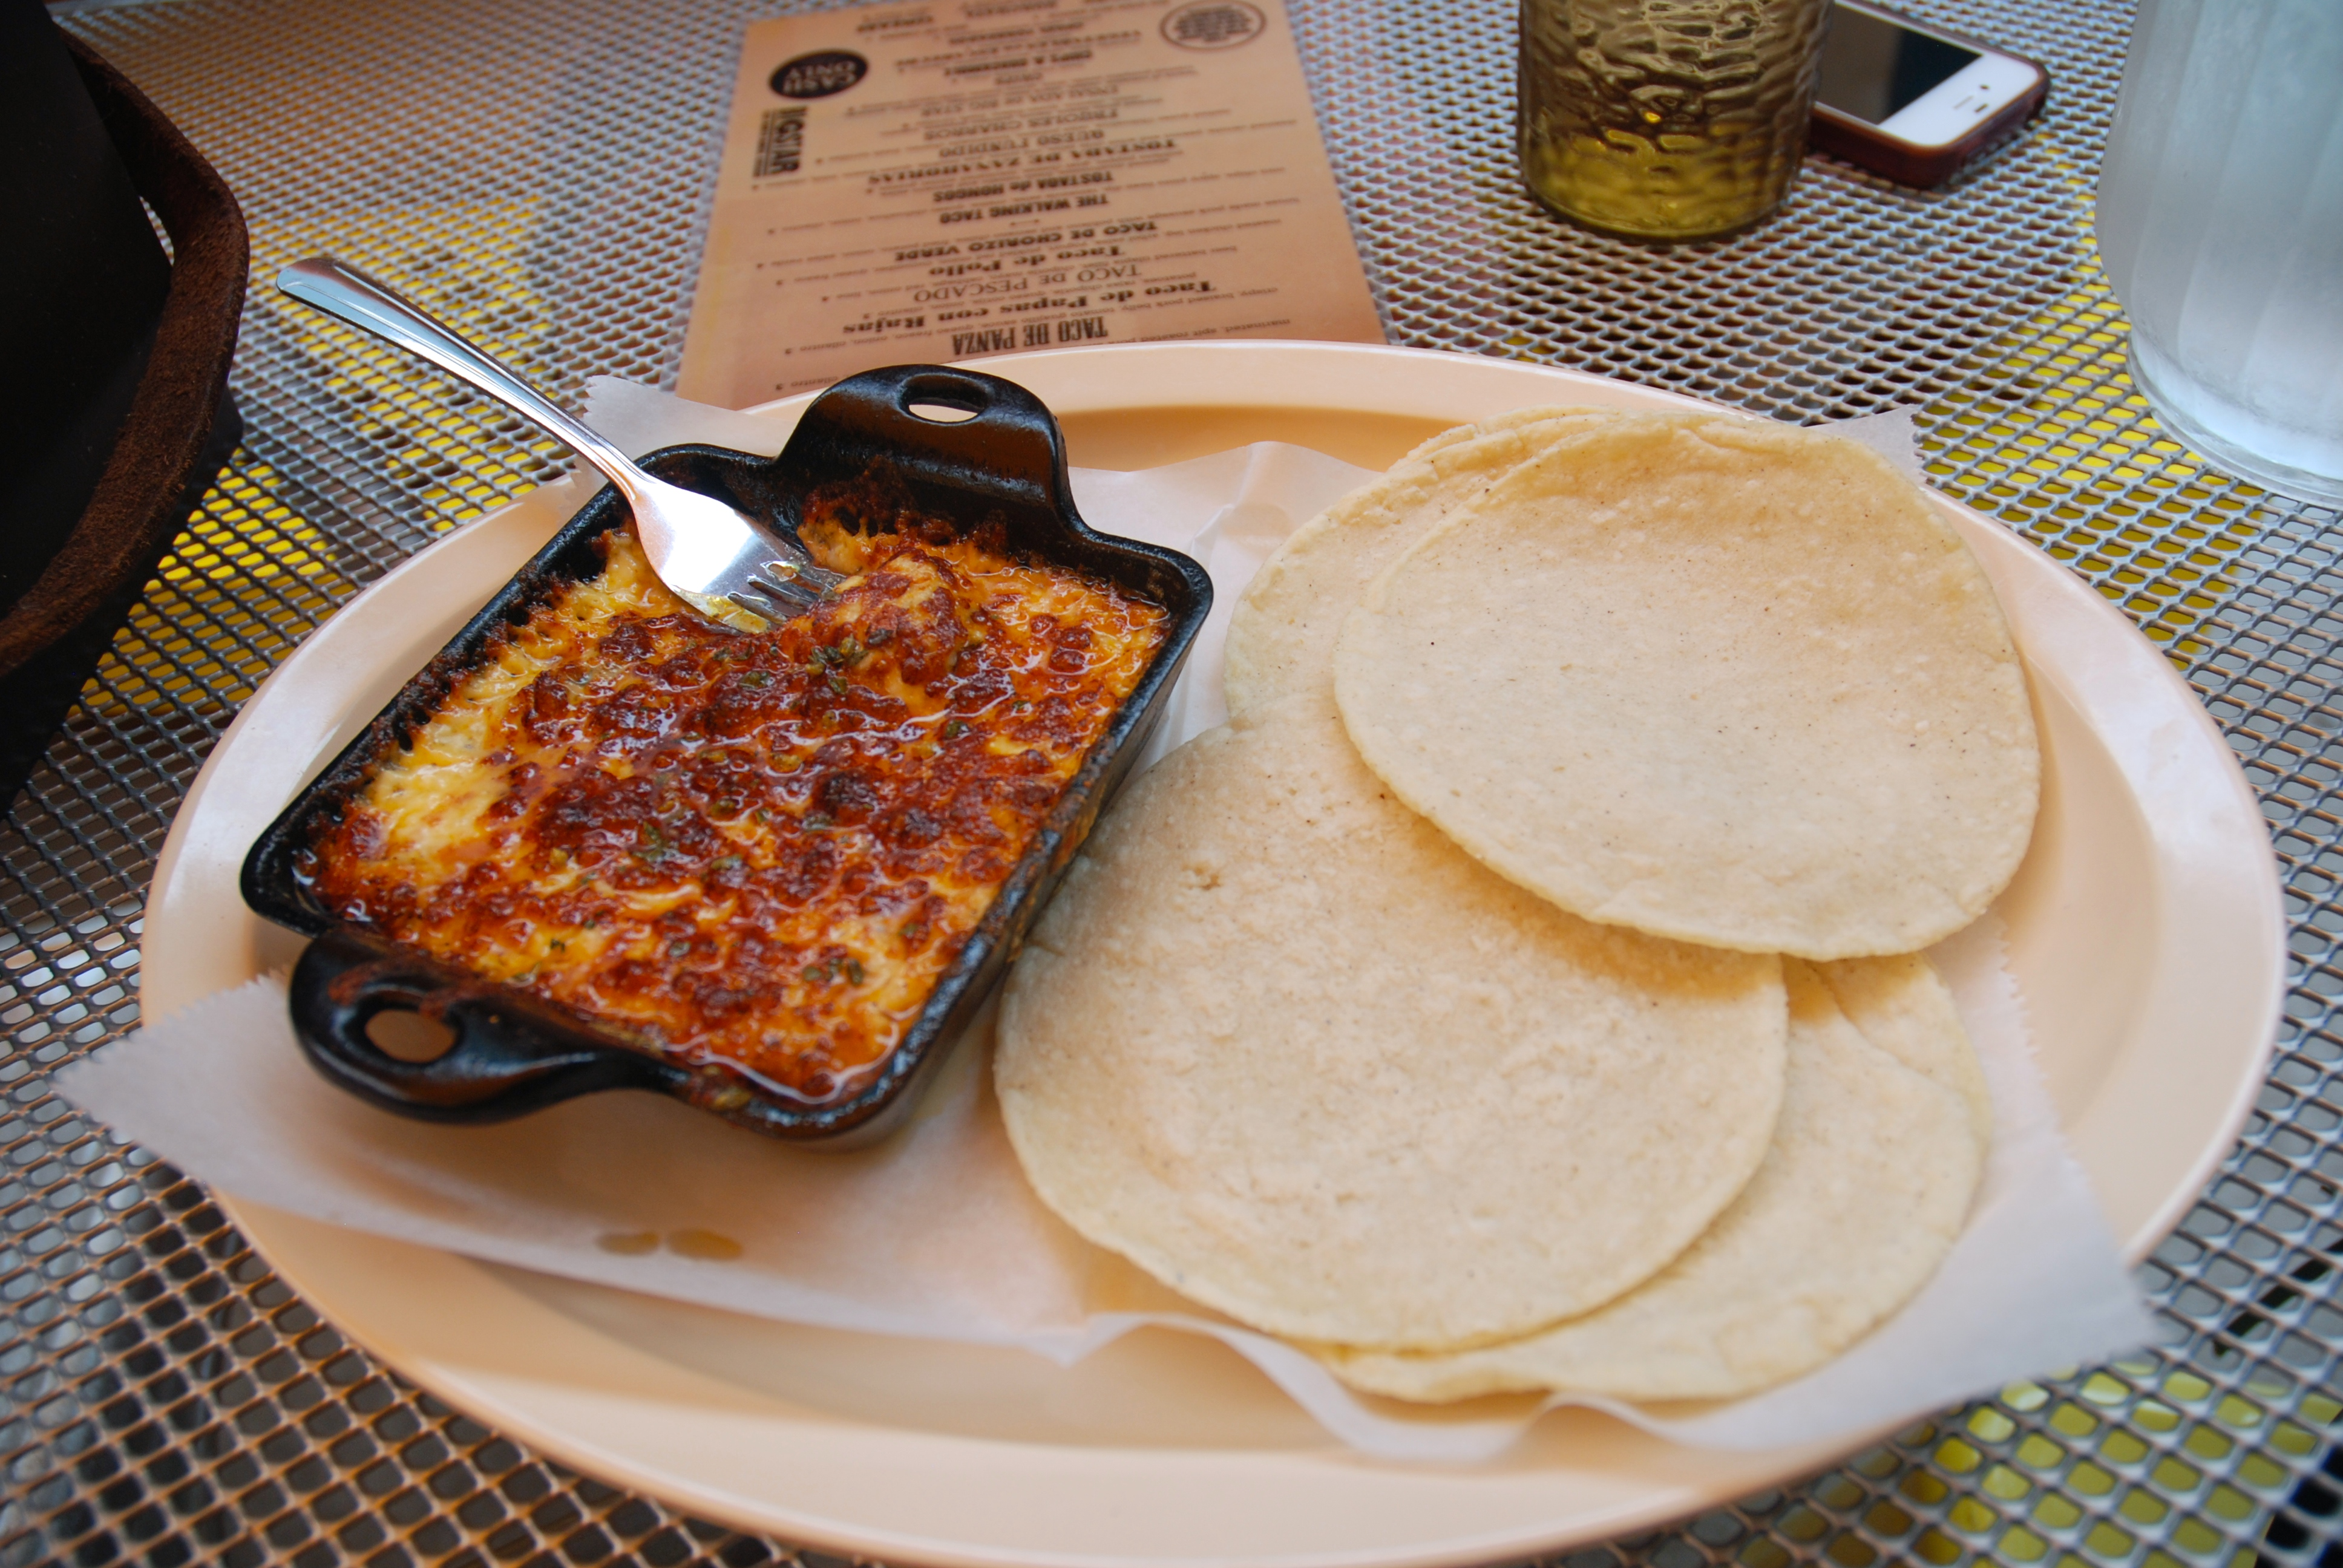 Queso Fundido - served with fresh corn tortillas.